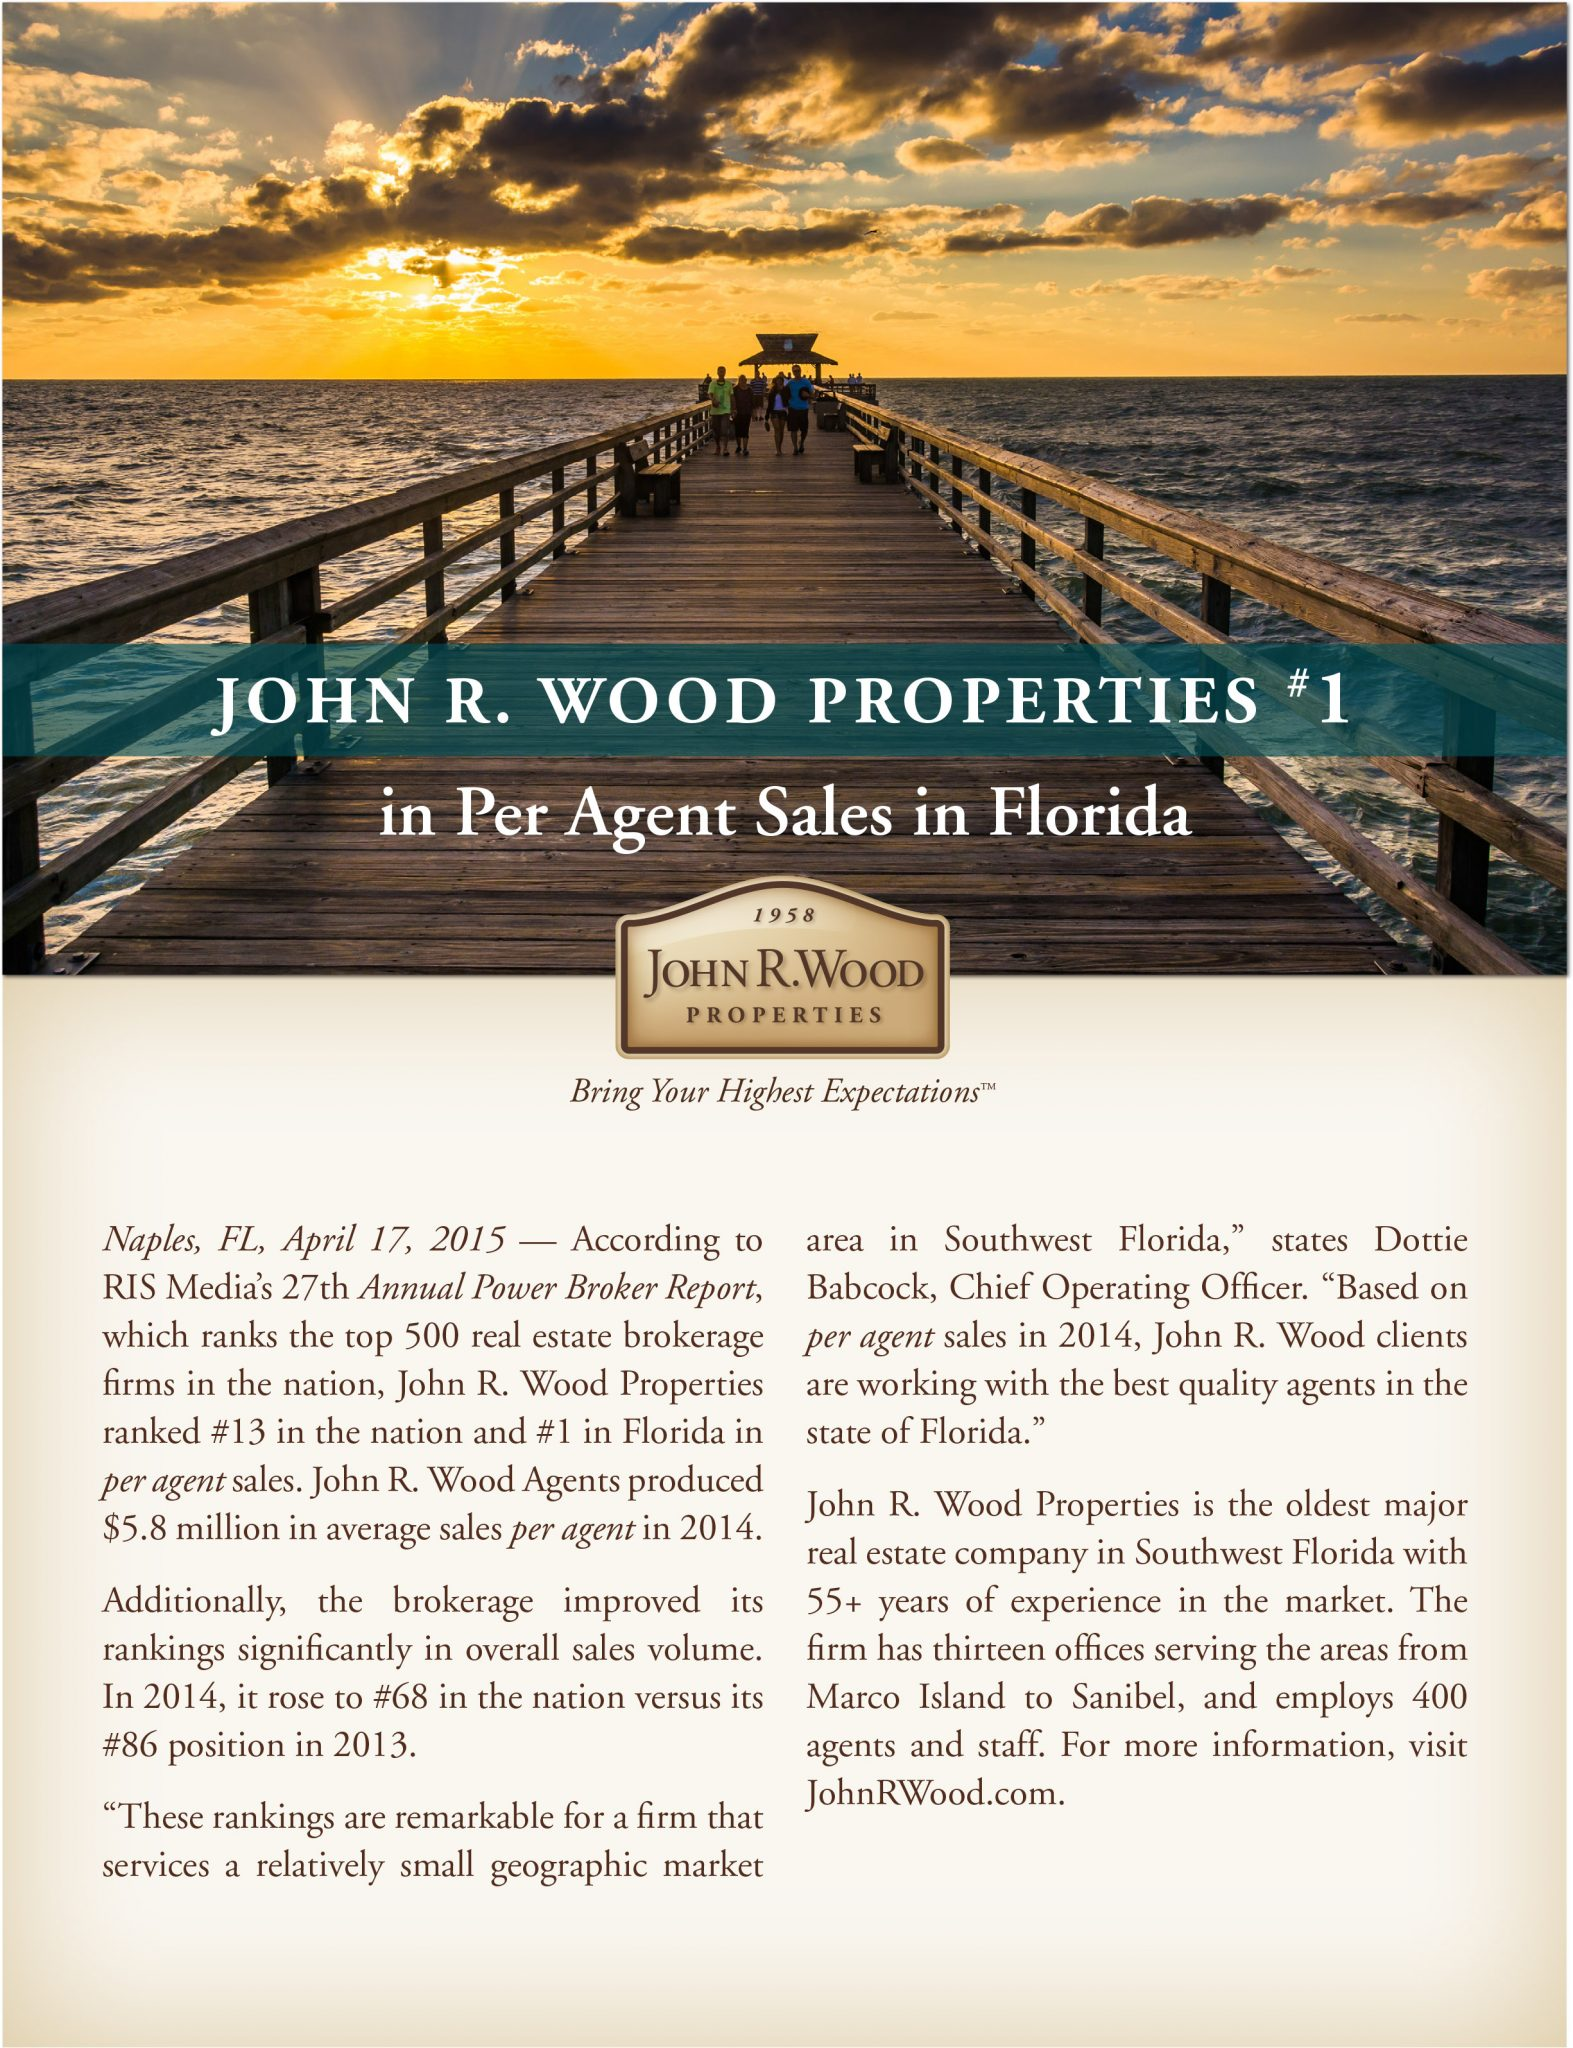 JohnRWood Properties #1 in per agent sales in Florida.indd